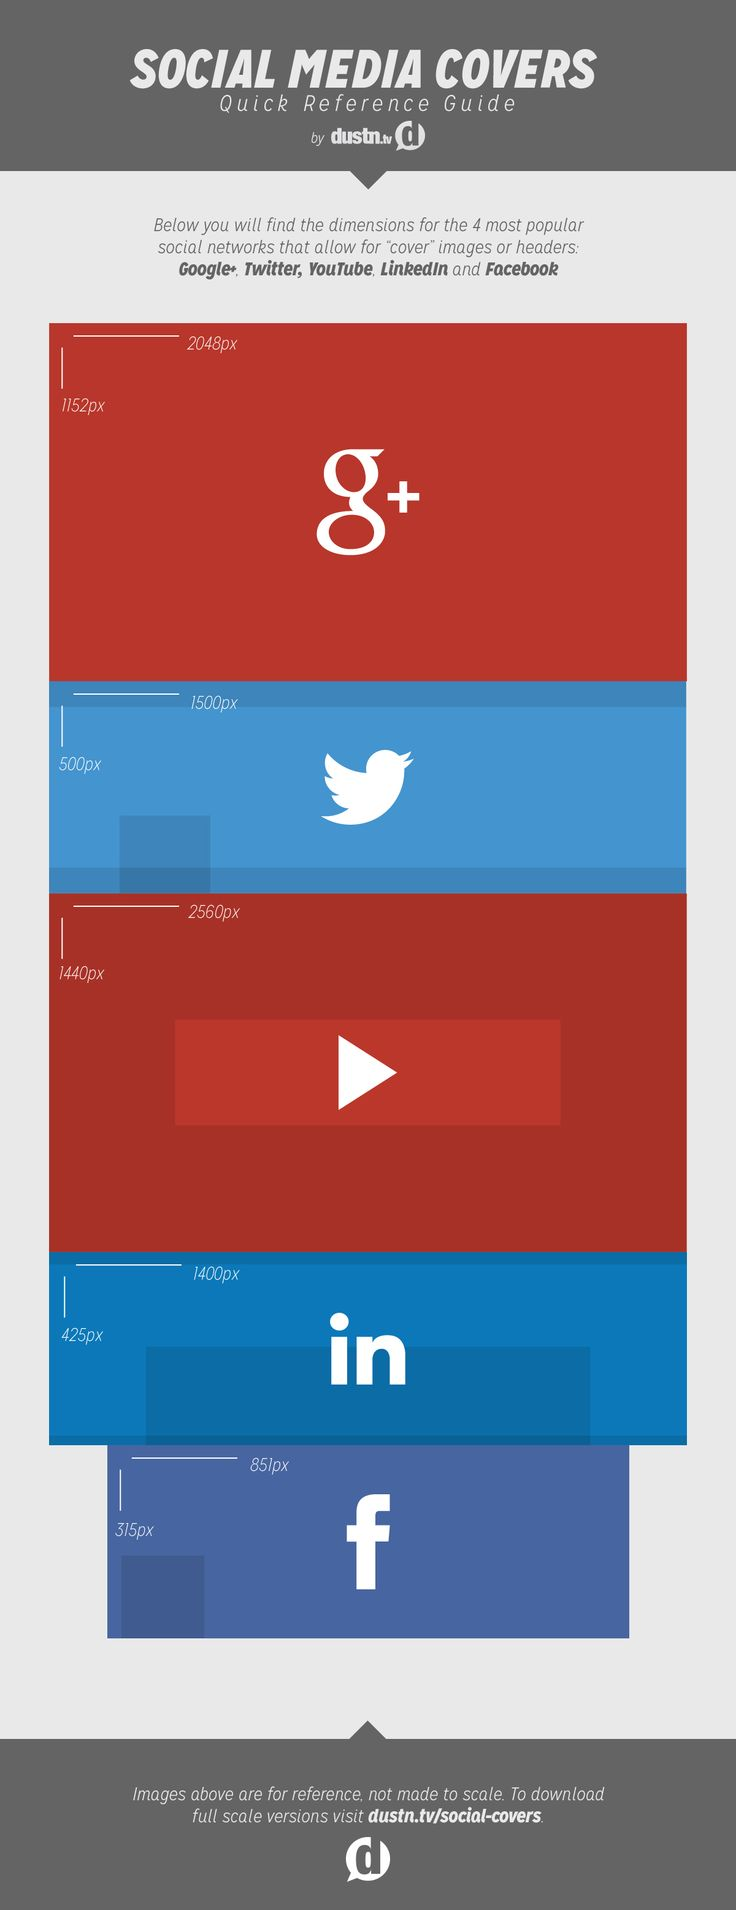 Social Media Cover Photo Dimensions - dustn.tv #socialmedia